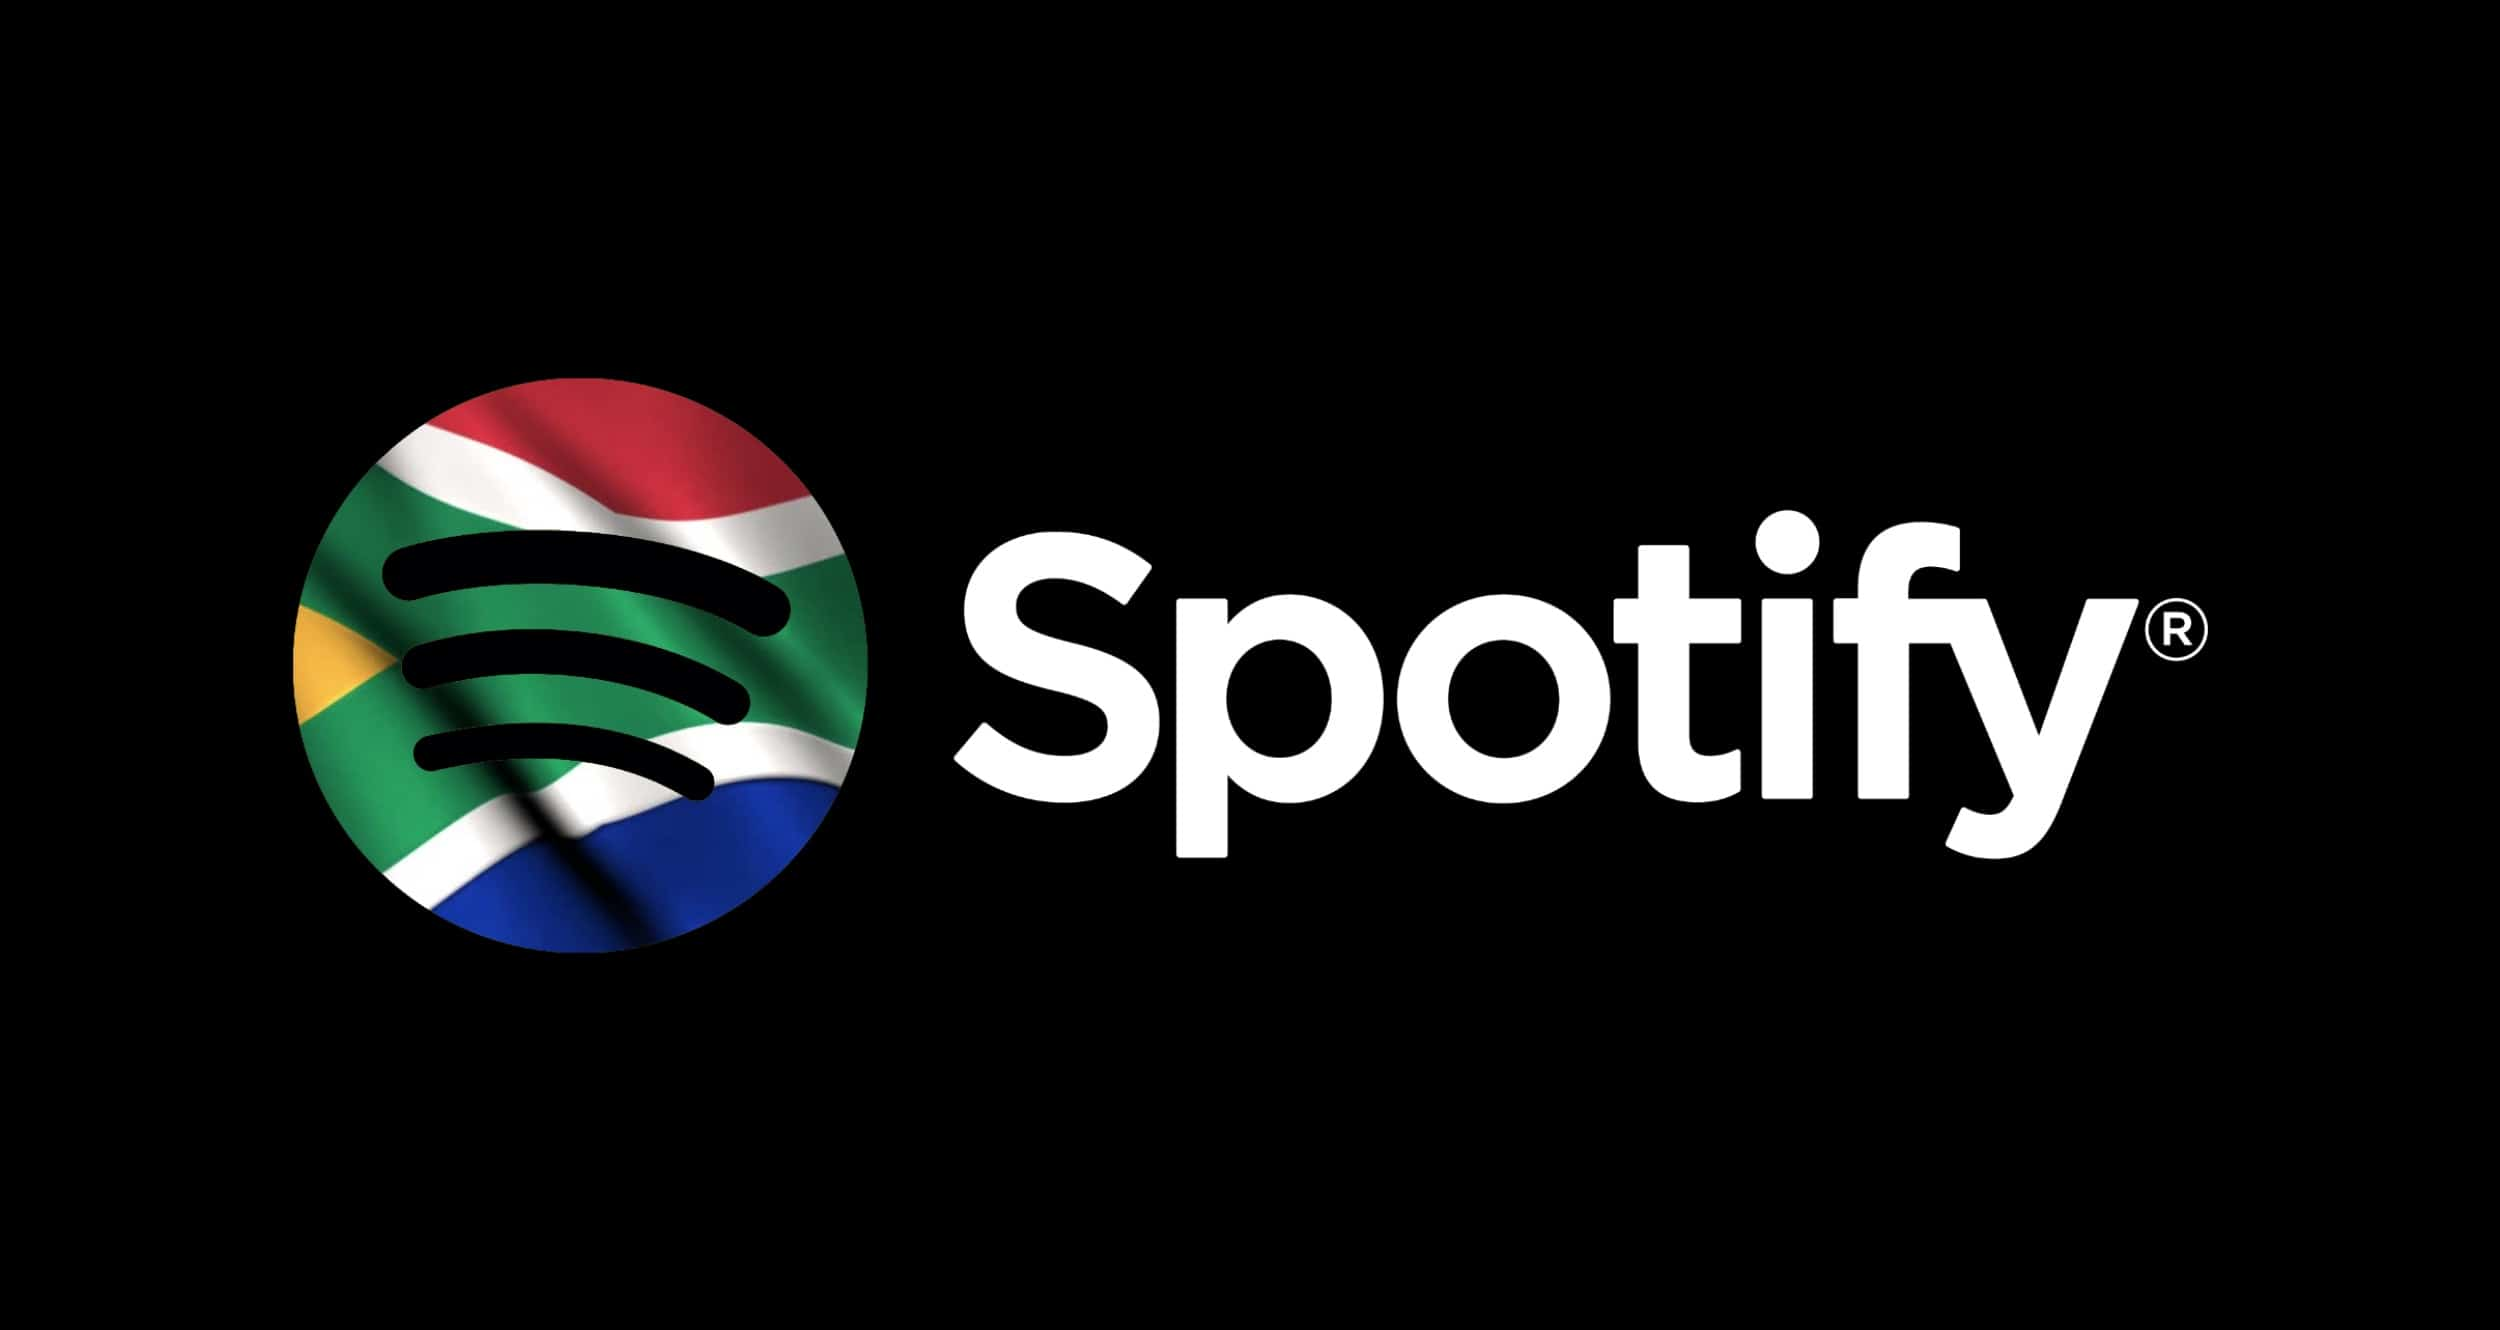 Spotify launches in South Africa